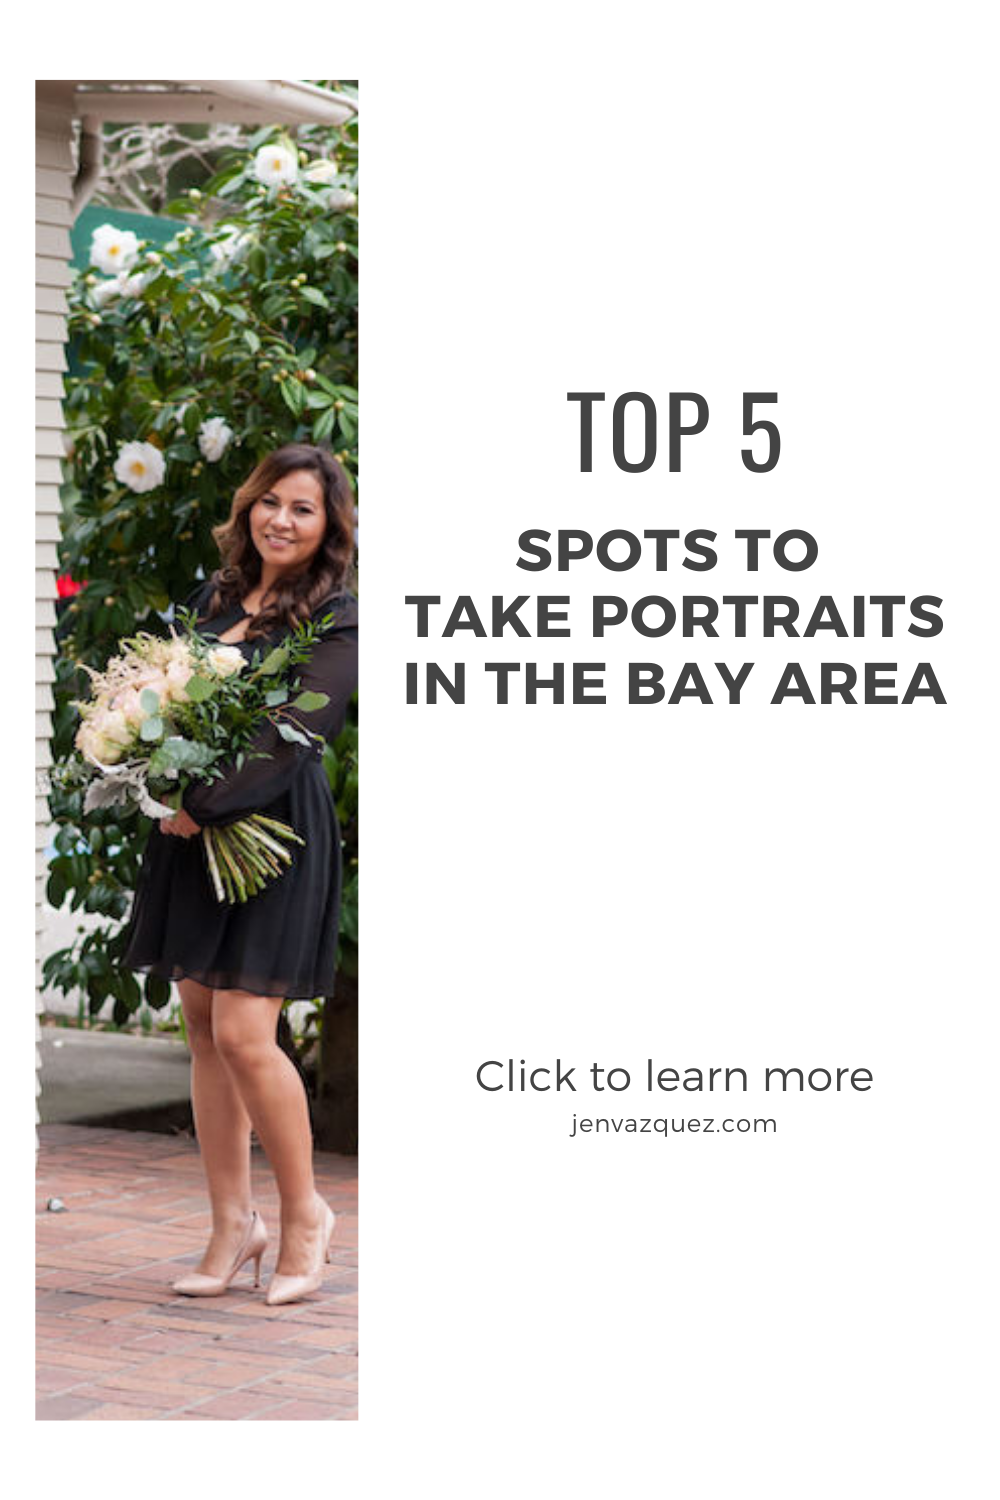 Top 5 Spots to Take Portraits in the Bay Area by Jen Vazquez